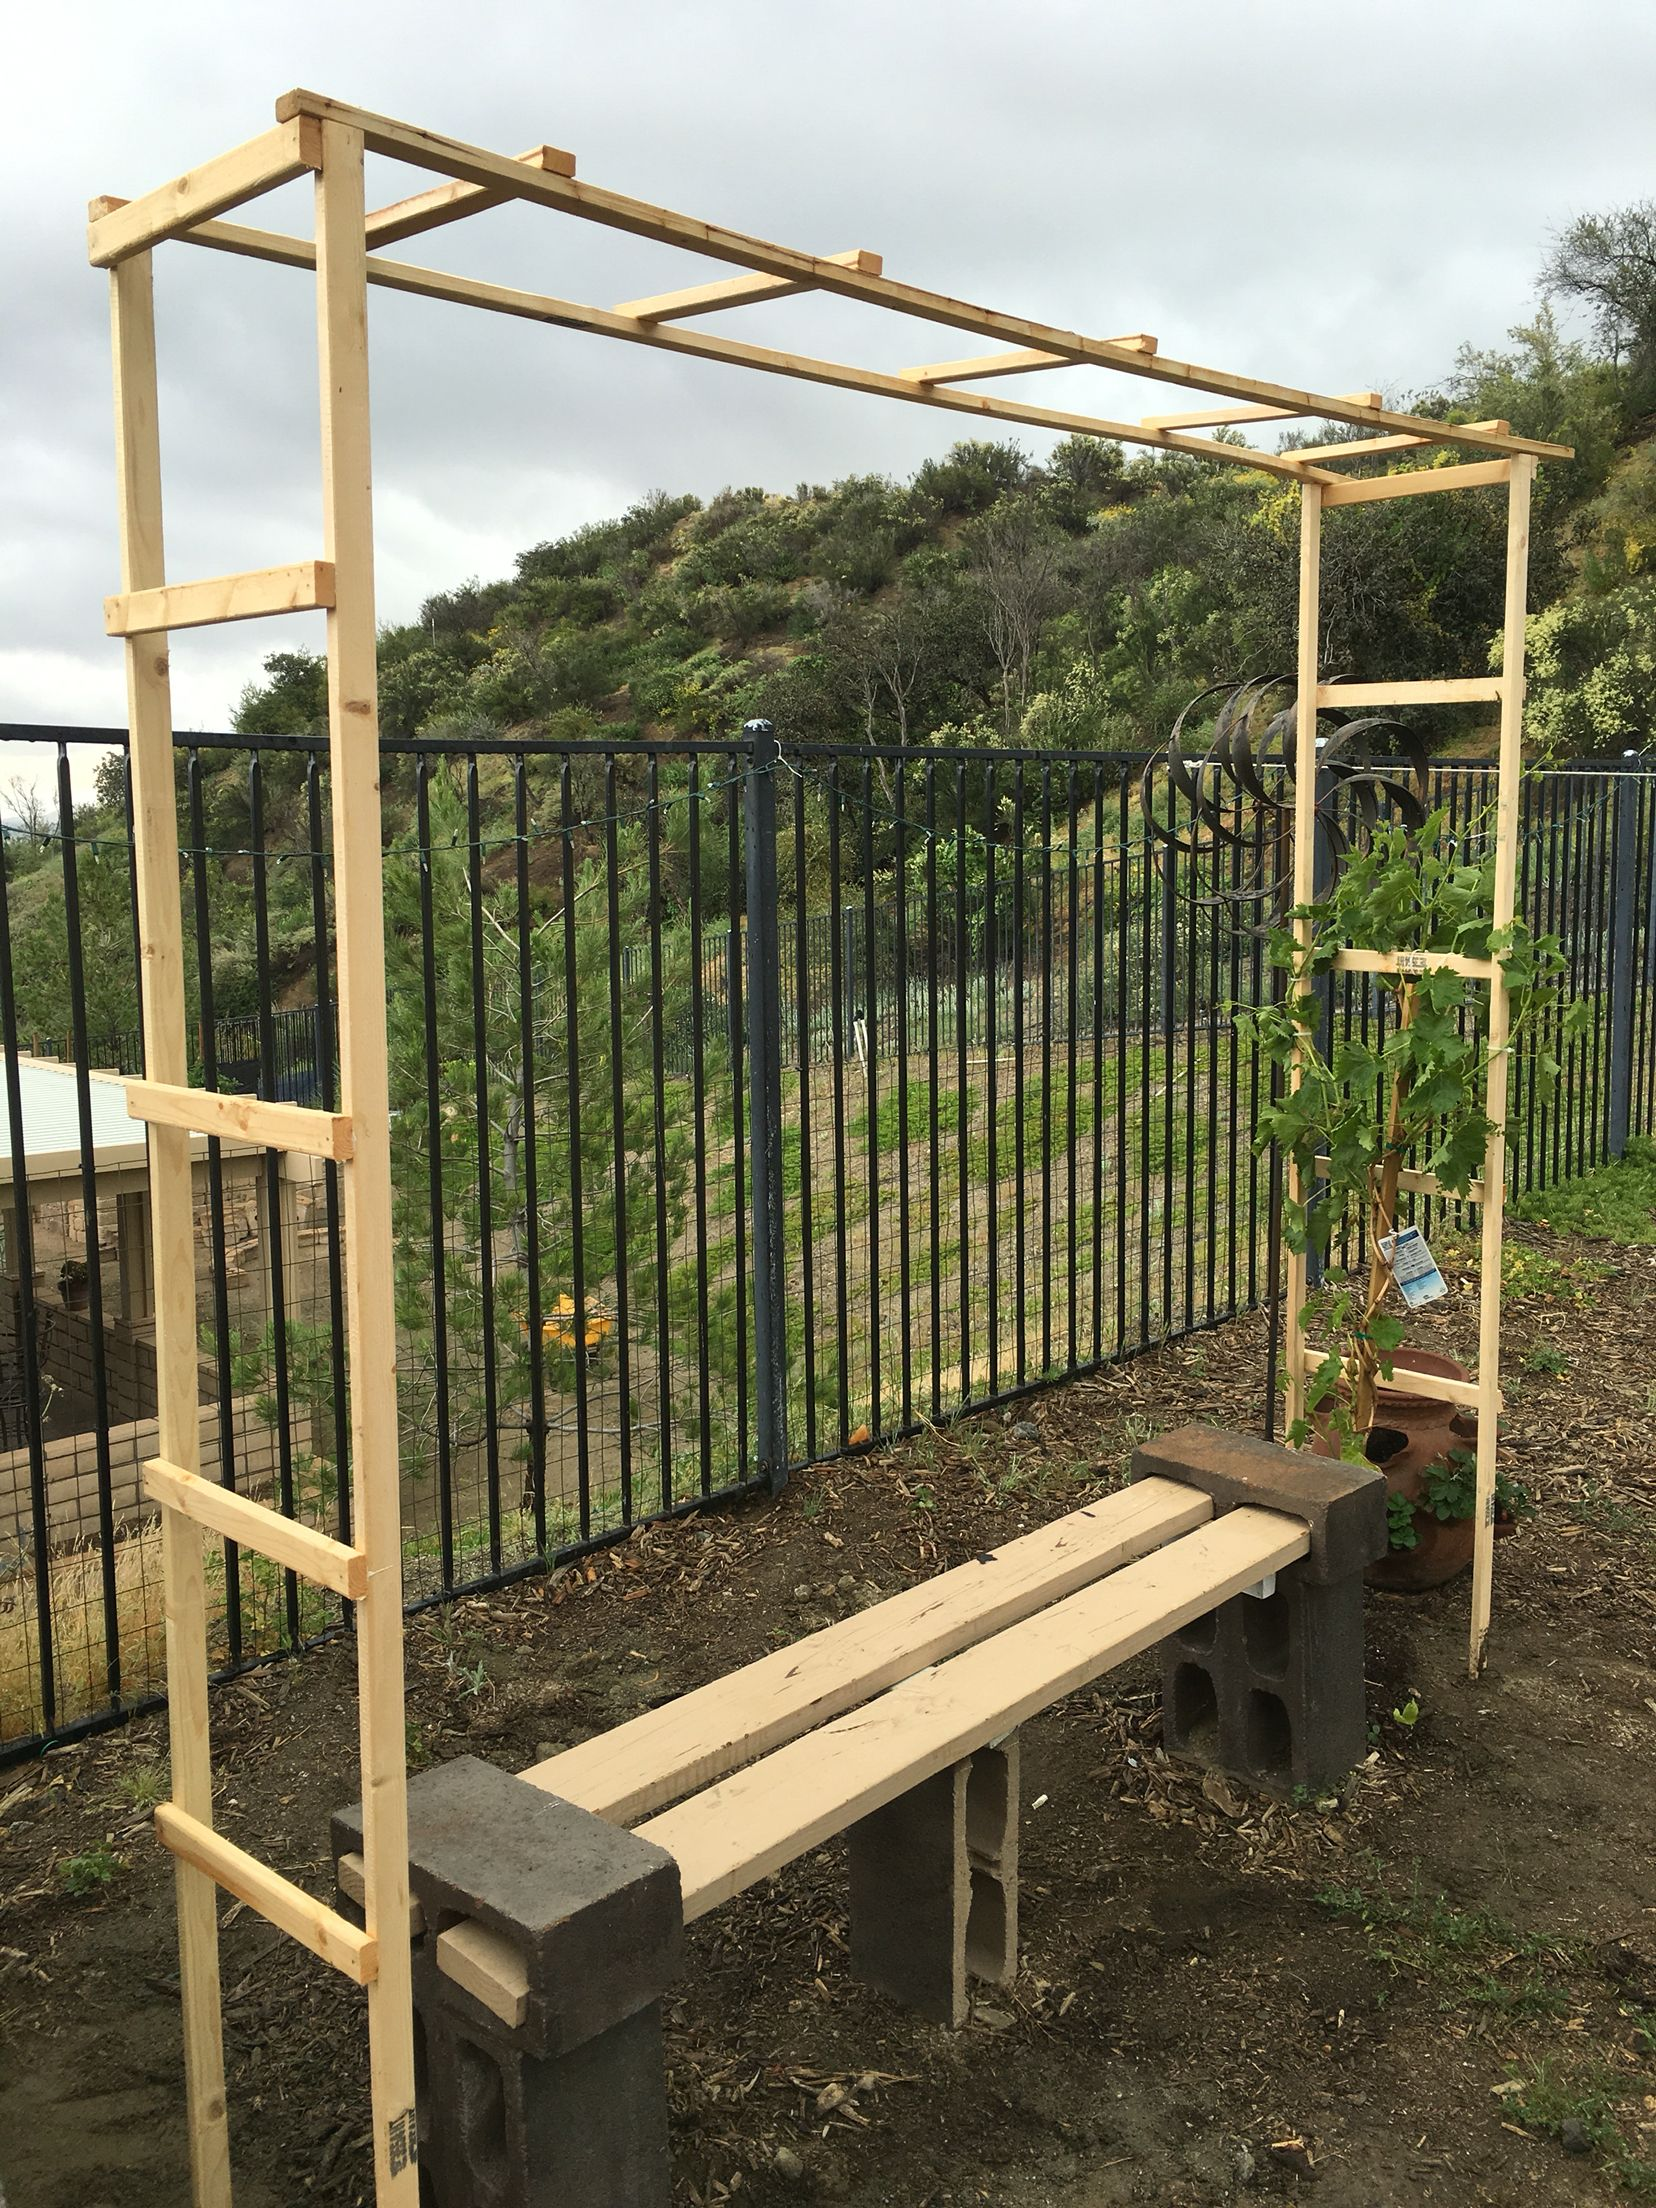 Superb Simple Trellis Ideas Part - 5: Trellis For My Grape Vine Simple Diy Under $10